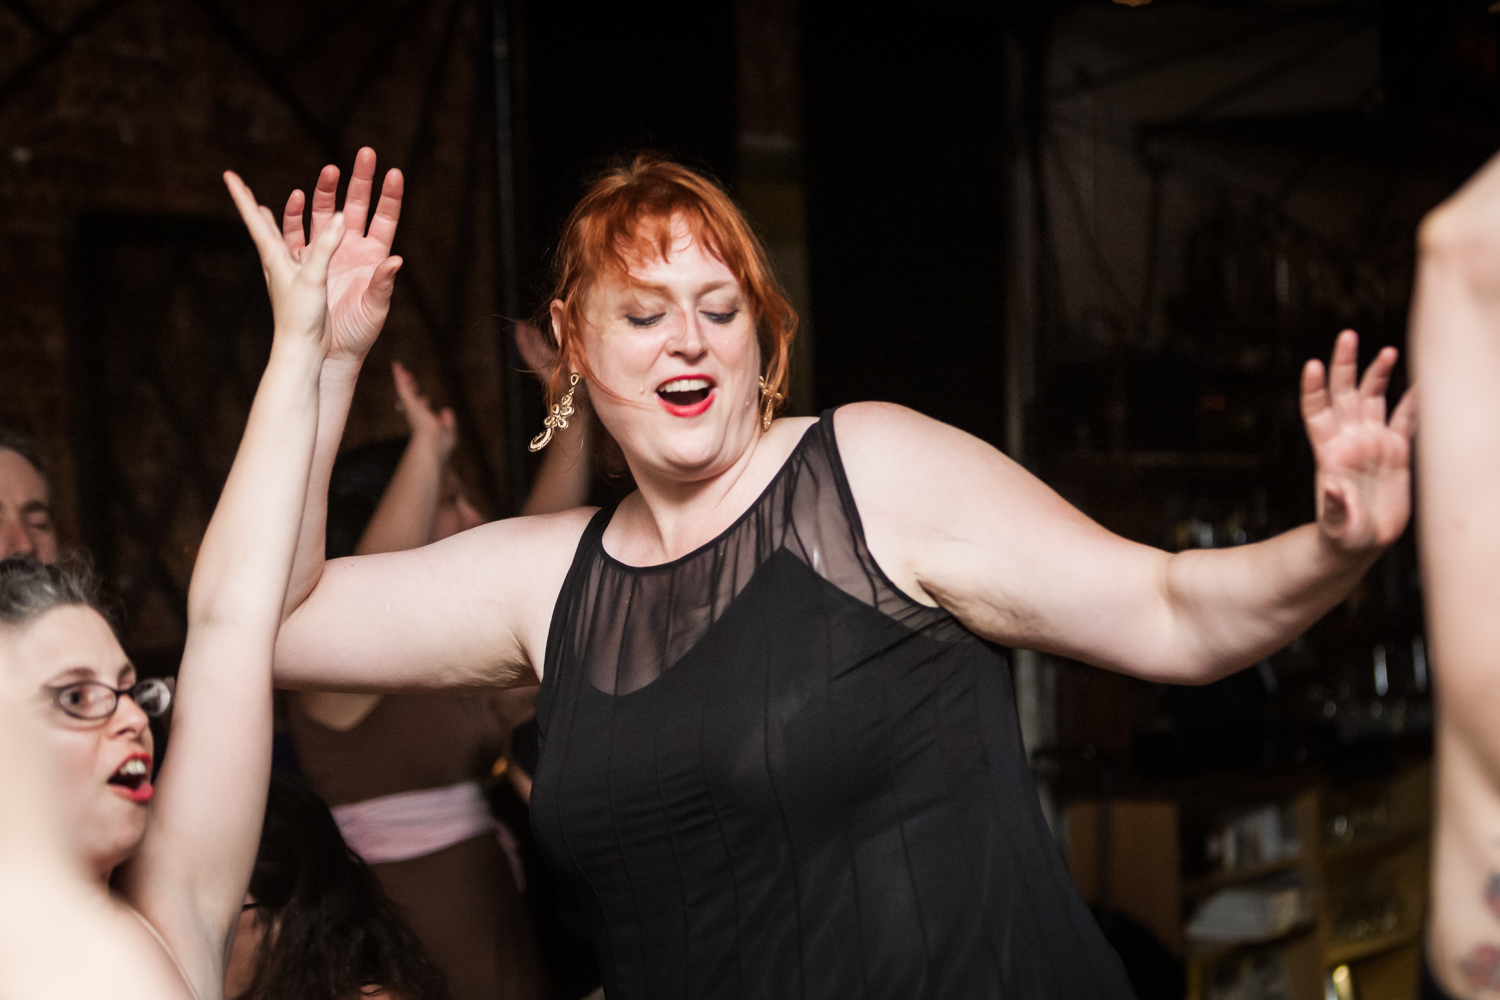 Red-haired guest in black dress dancing with hands up